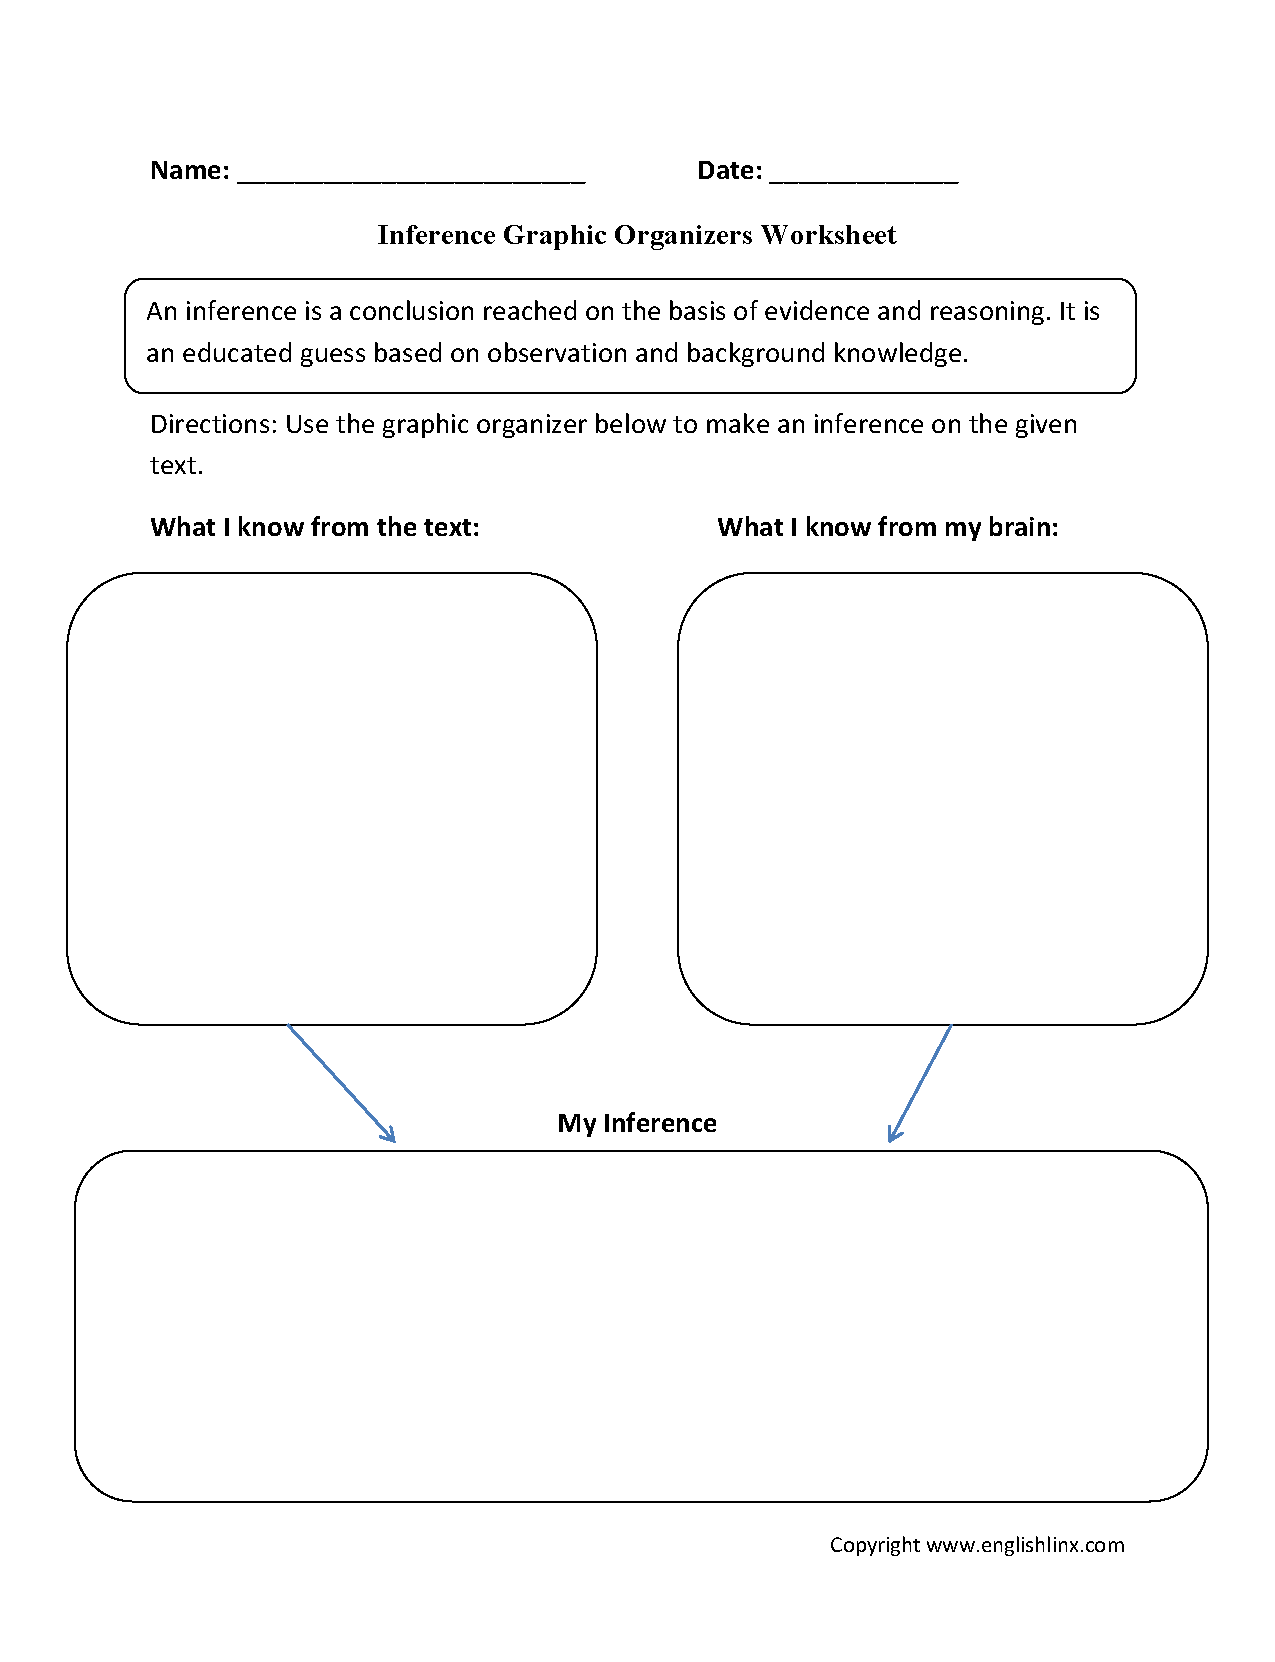 ... Organizers Worksheets | Inference Graphic Organizers Worksheets